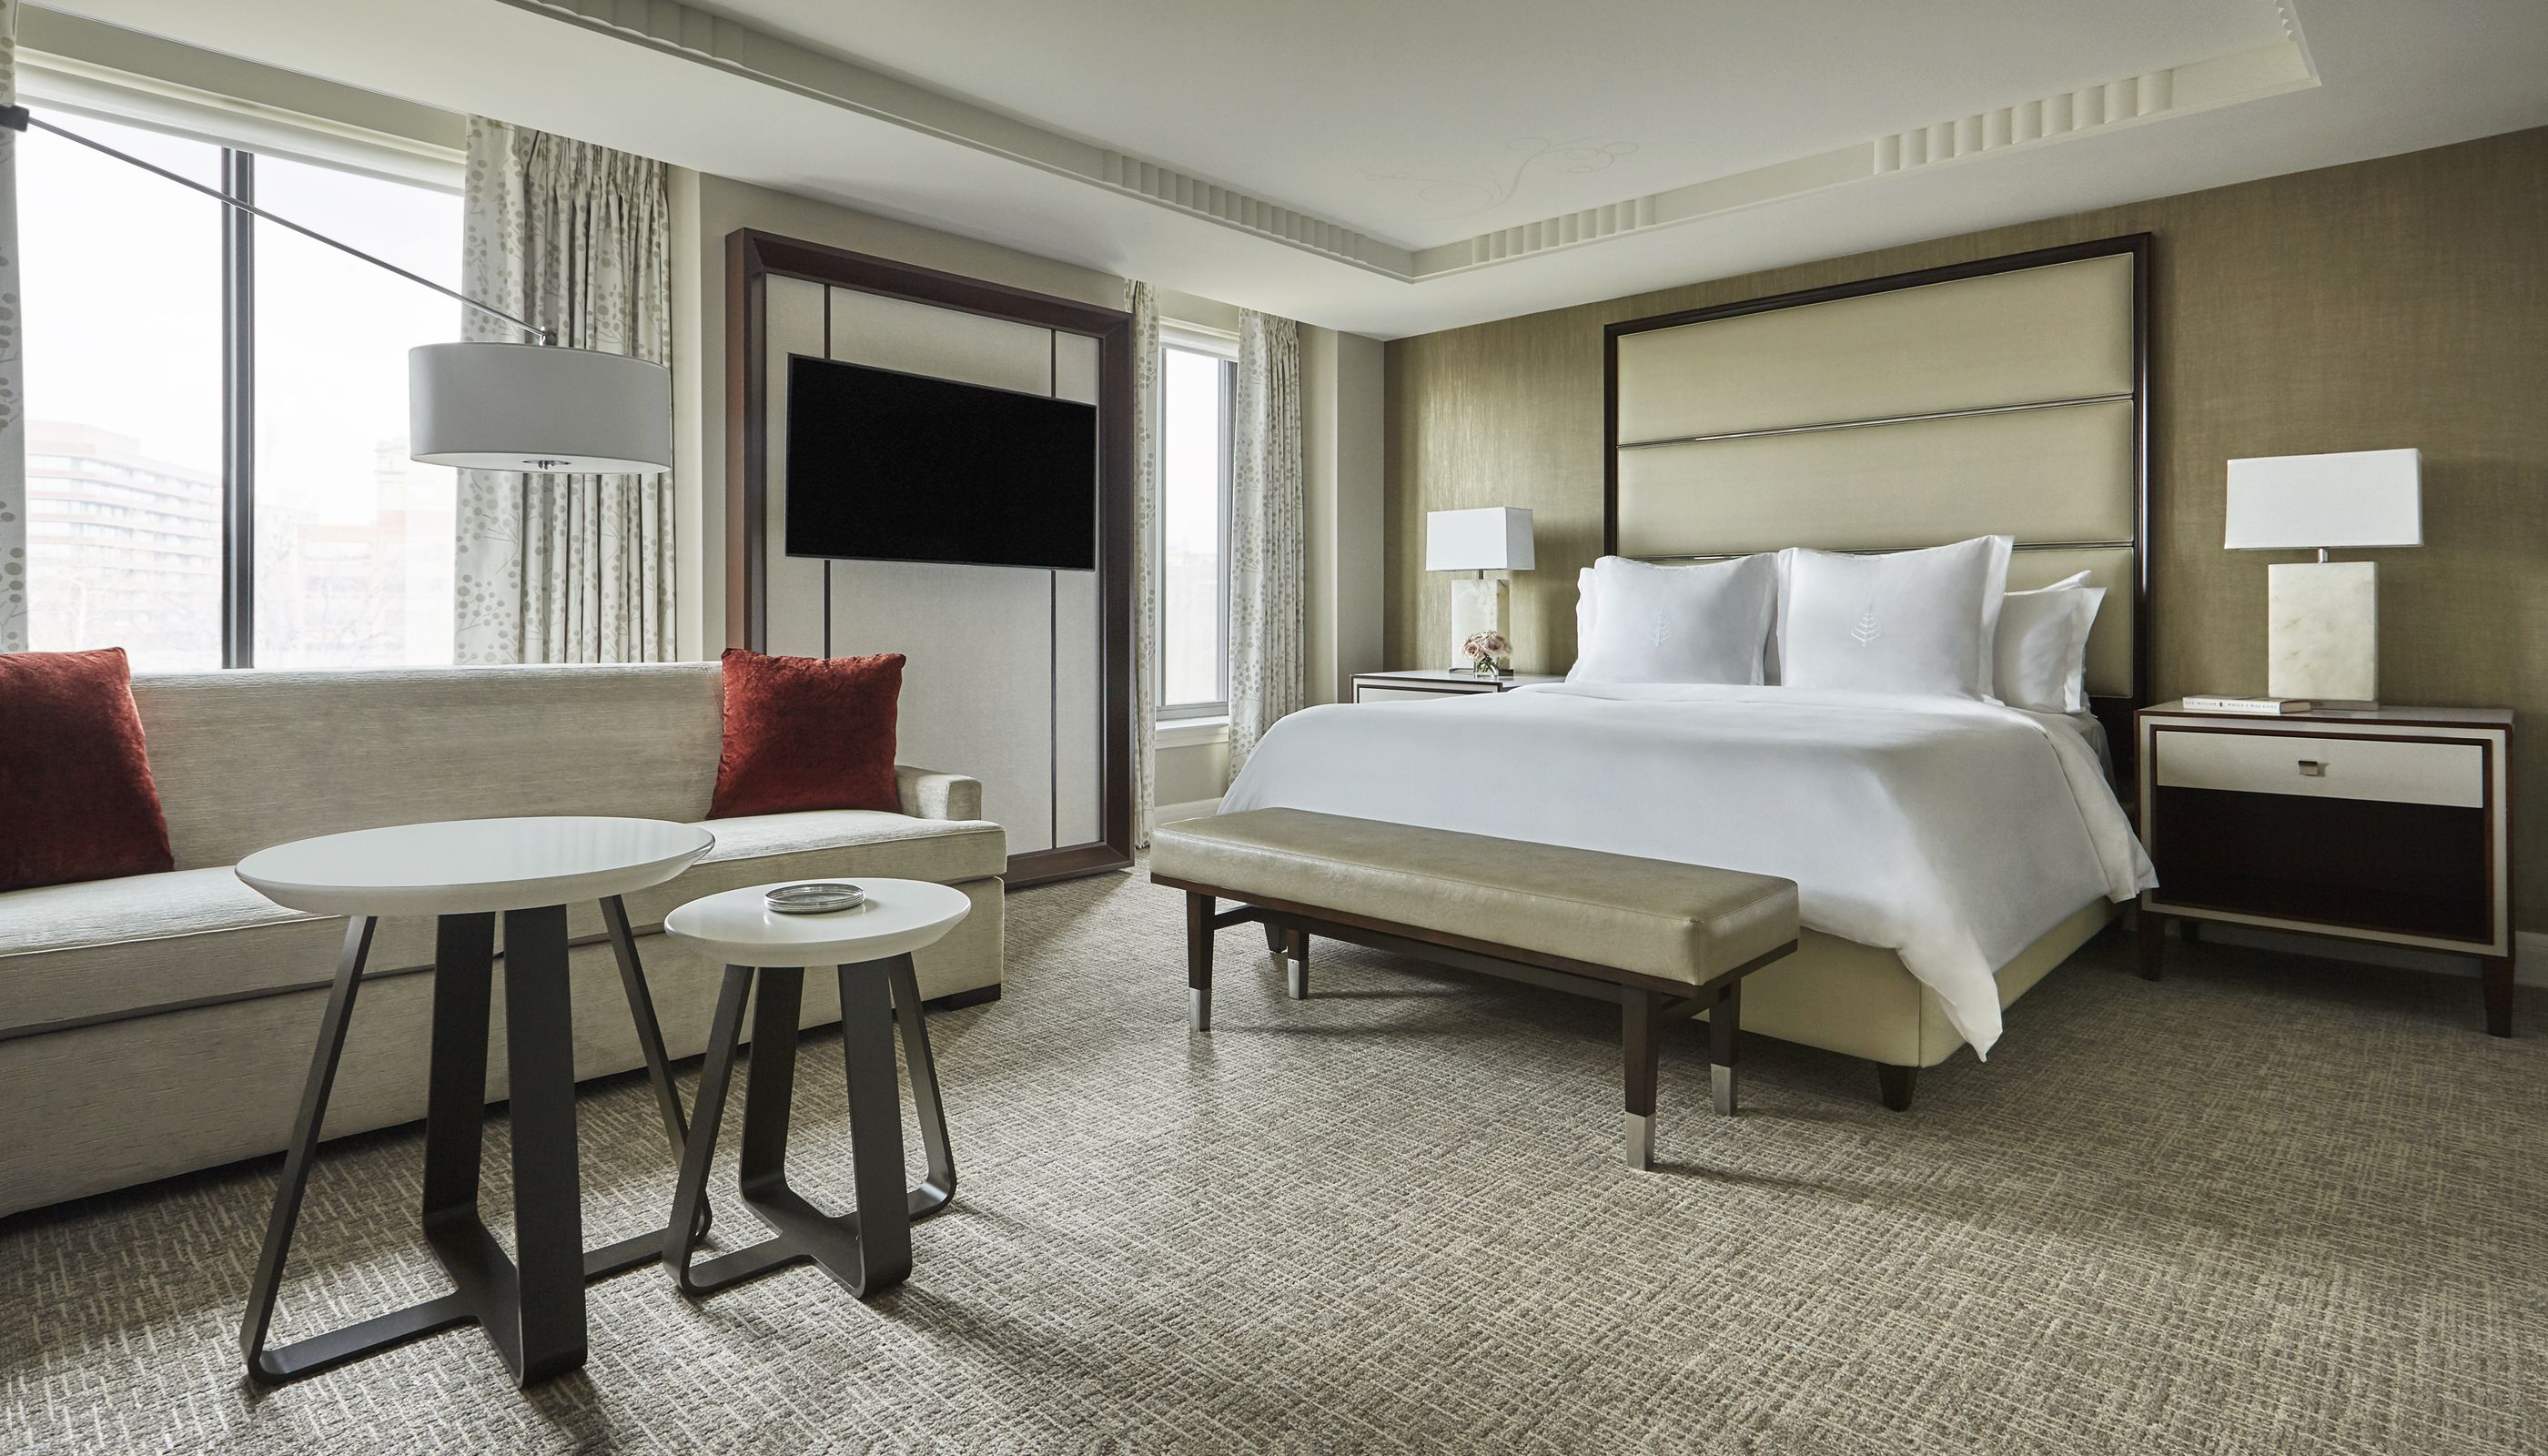 Technology And Tvs Are Changing Guestroom Design Hotel Management Luxury Hotel Room Guest Room Design Hotels Design